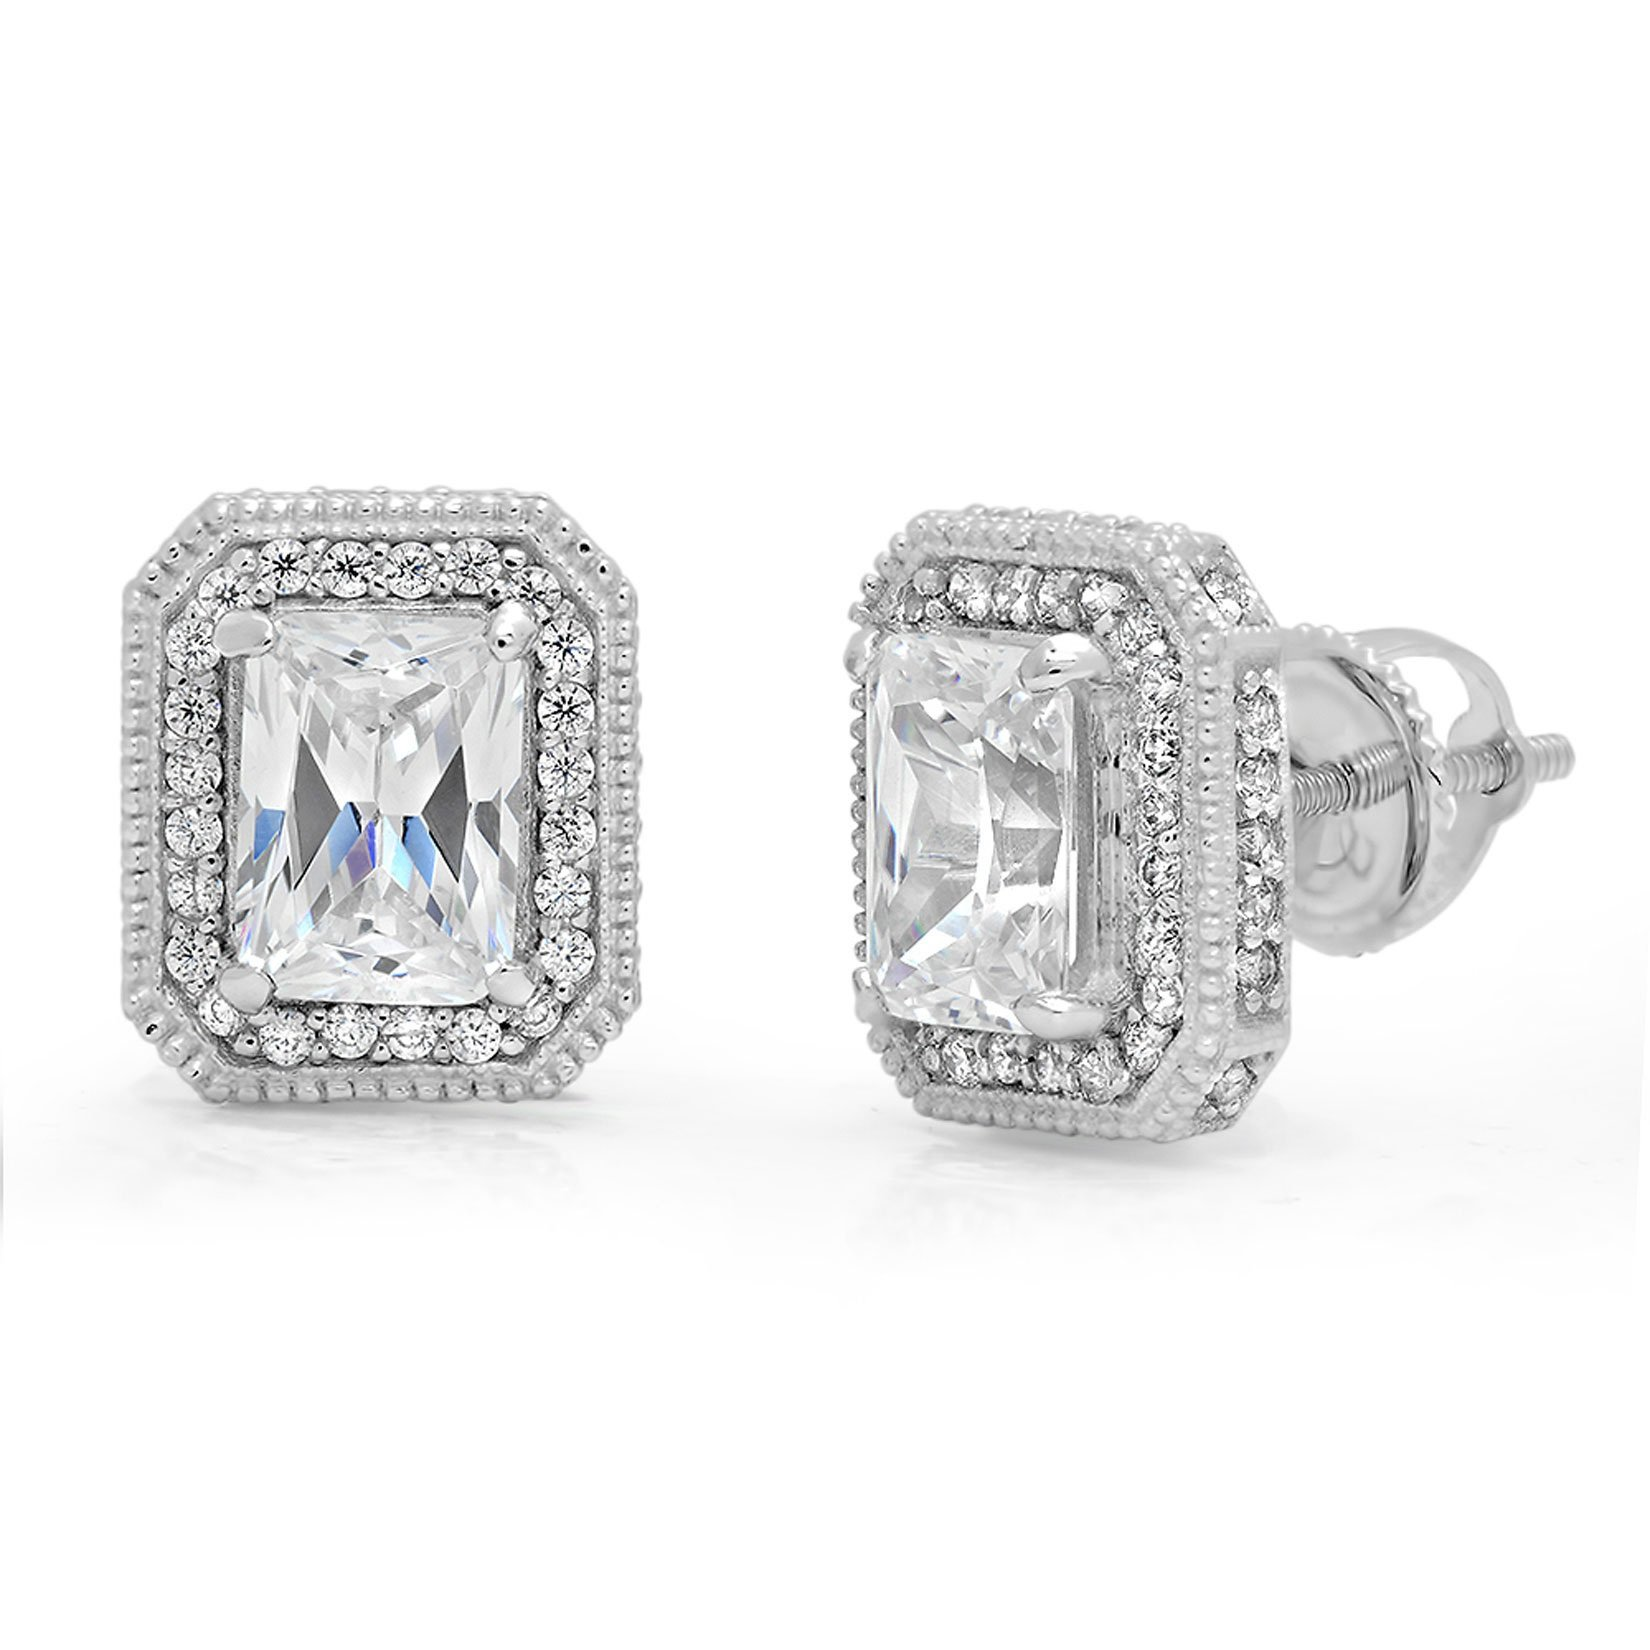 Clara Pucci 3.78 CT Emerald Cut CZ SOLITAIRE HALO STUD EARRINGS Solid 14K White GOLD Screw Back